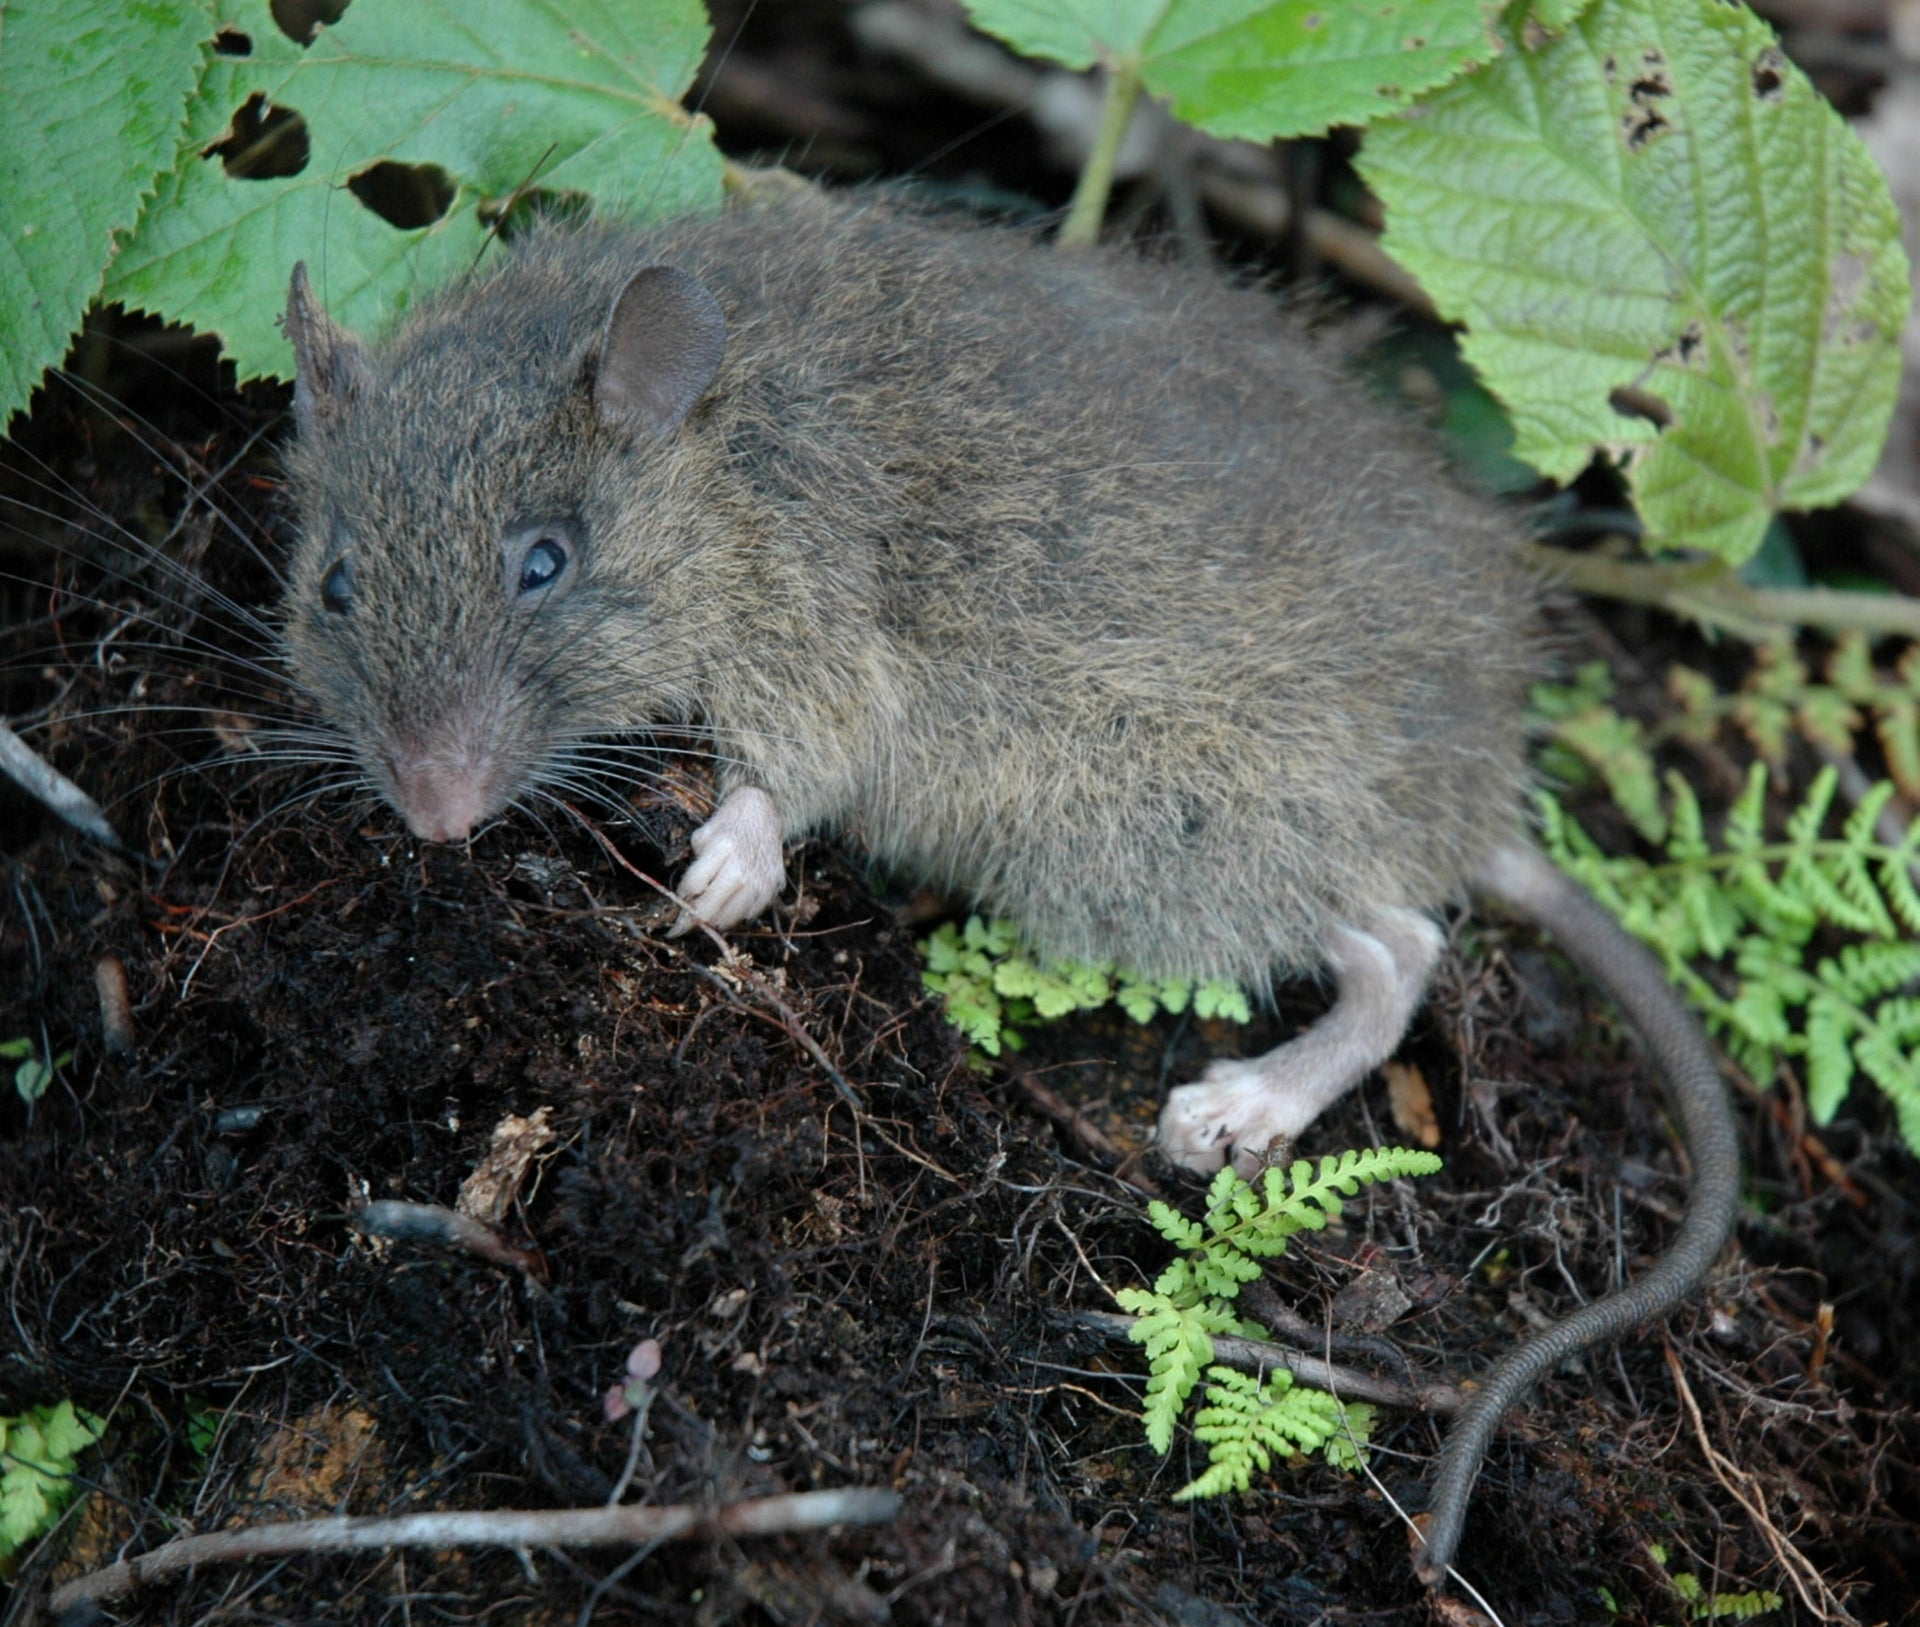 A hairy-tailed rat